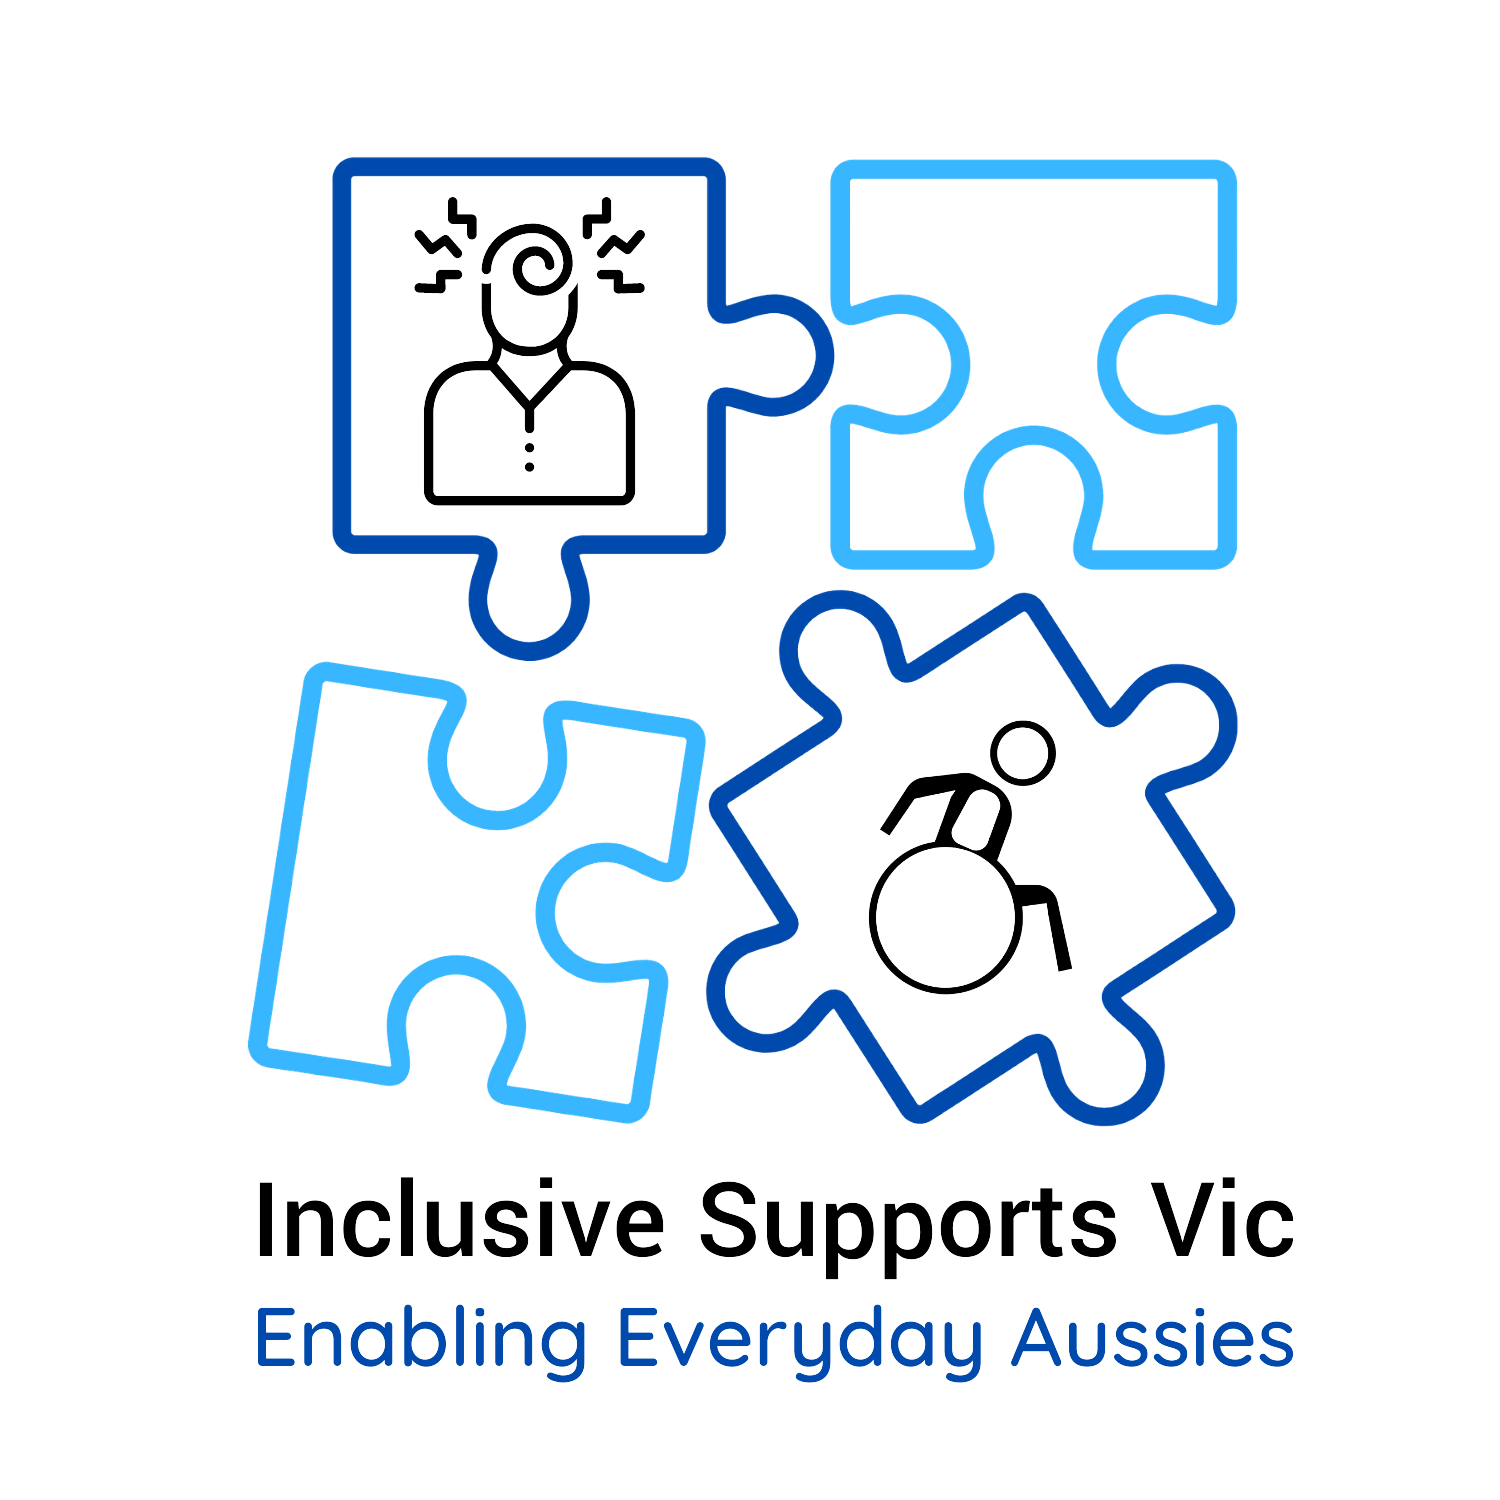 Inclusive Supports Vic